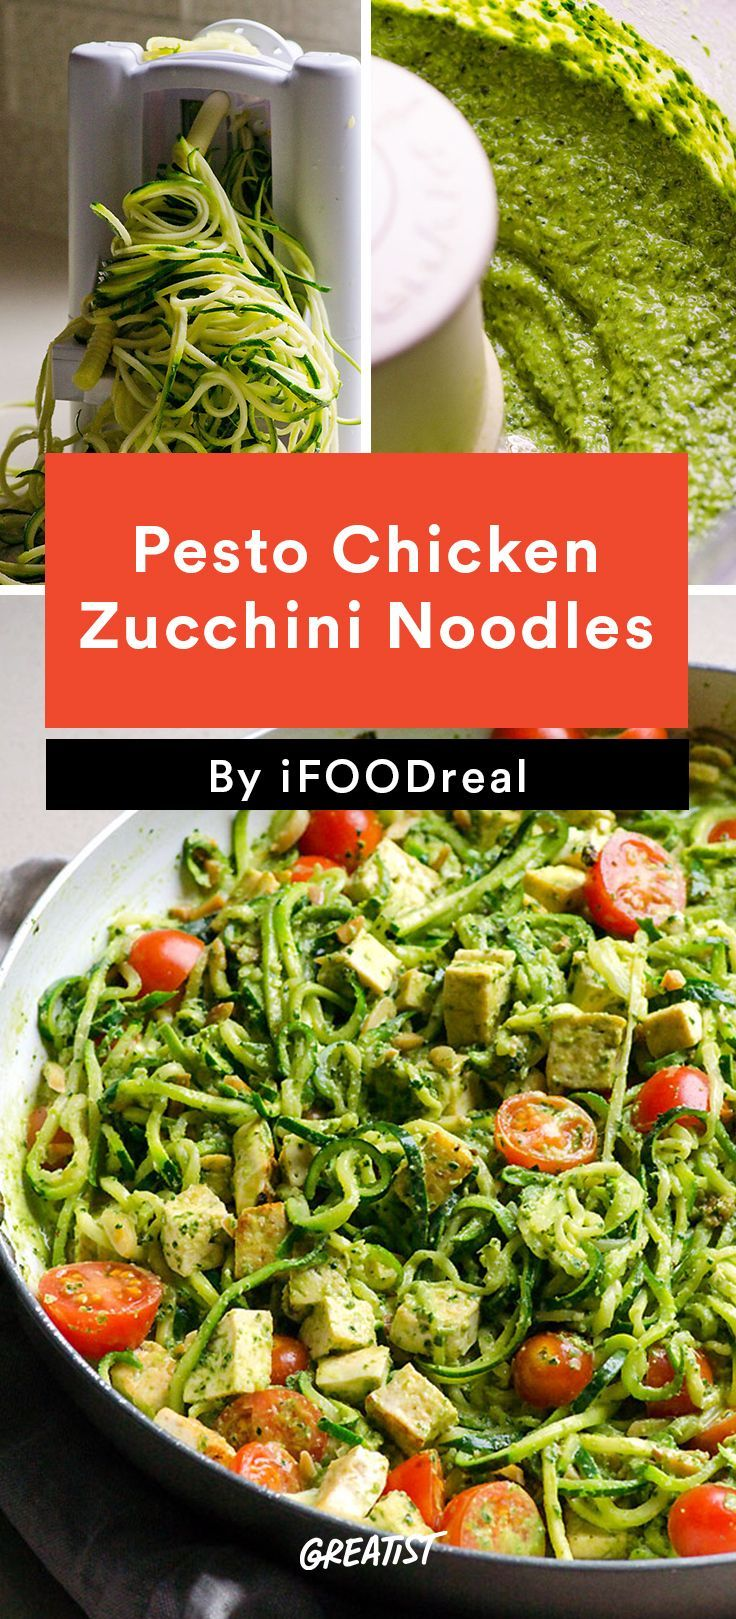 6. Pesto Chicken Zucchini Noodles #healthy #weeknight #dinners http://greatist.com/eat/clean-eating-recipes-for-busy-weeknights